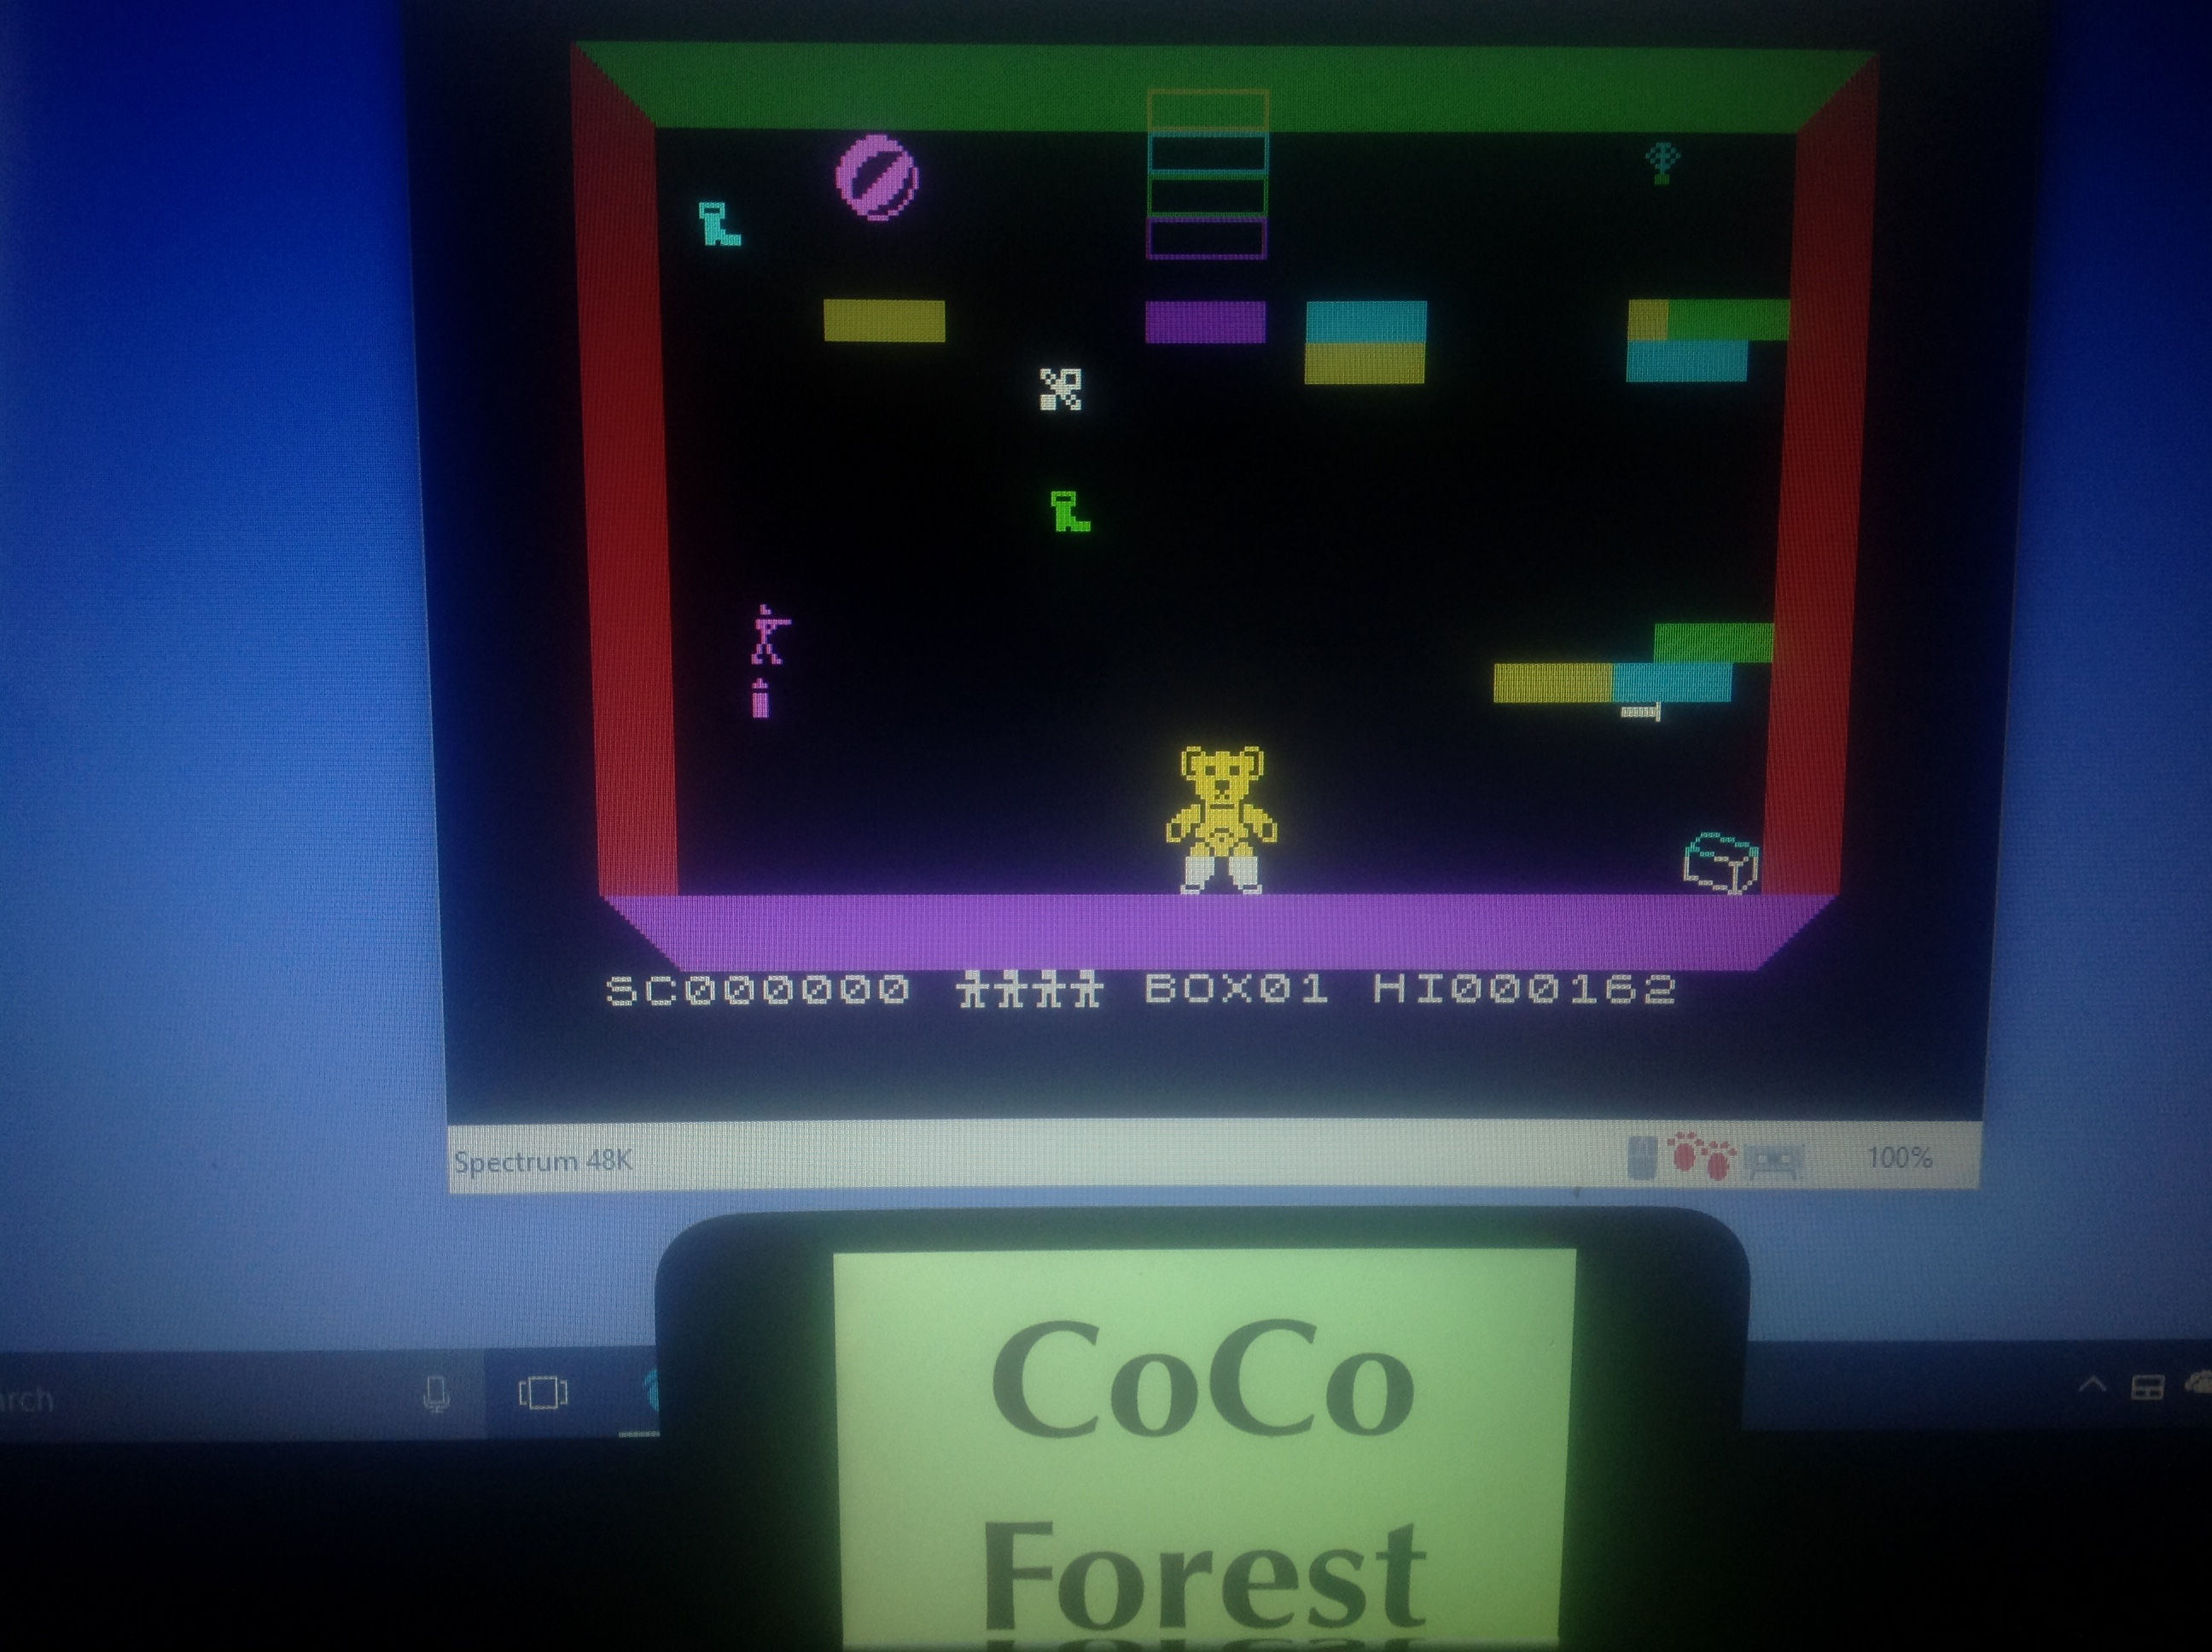 CoCoForest: Ah Diddums (ZX Spectrum Emulated) 162 points on 2018-01-20 08:31:18